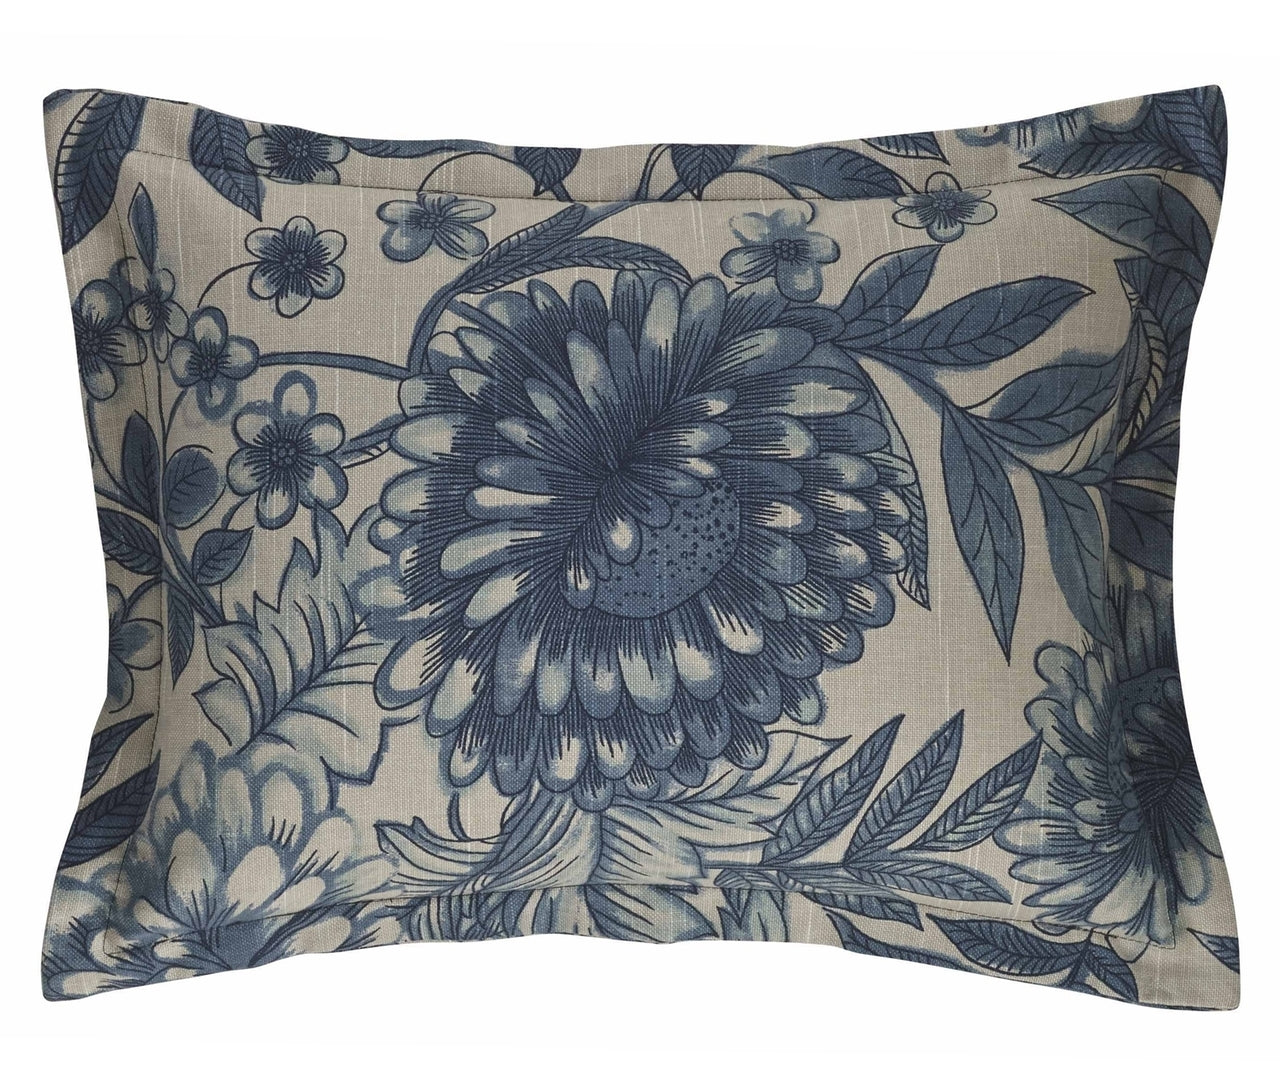 Hulopoe Bay Boudoir Pillow Mystic Valley Traders - unique linens online